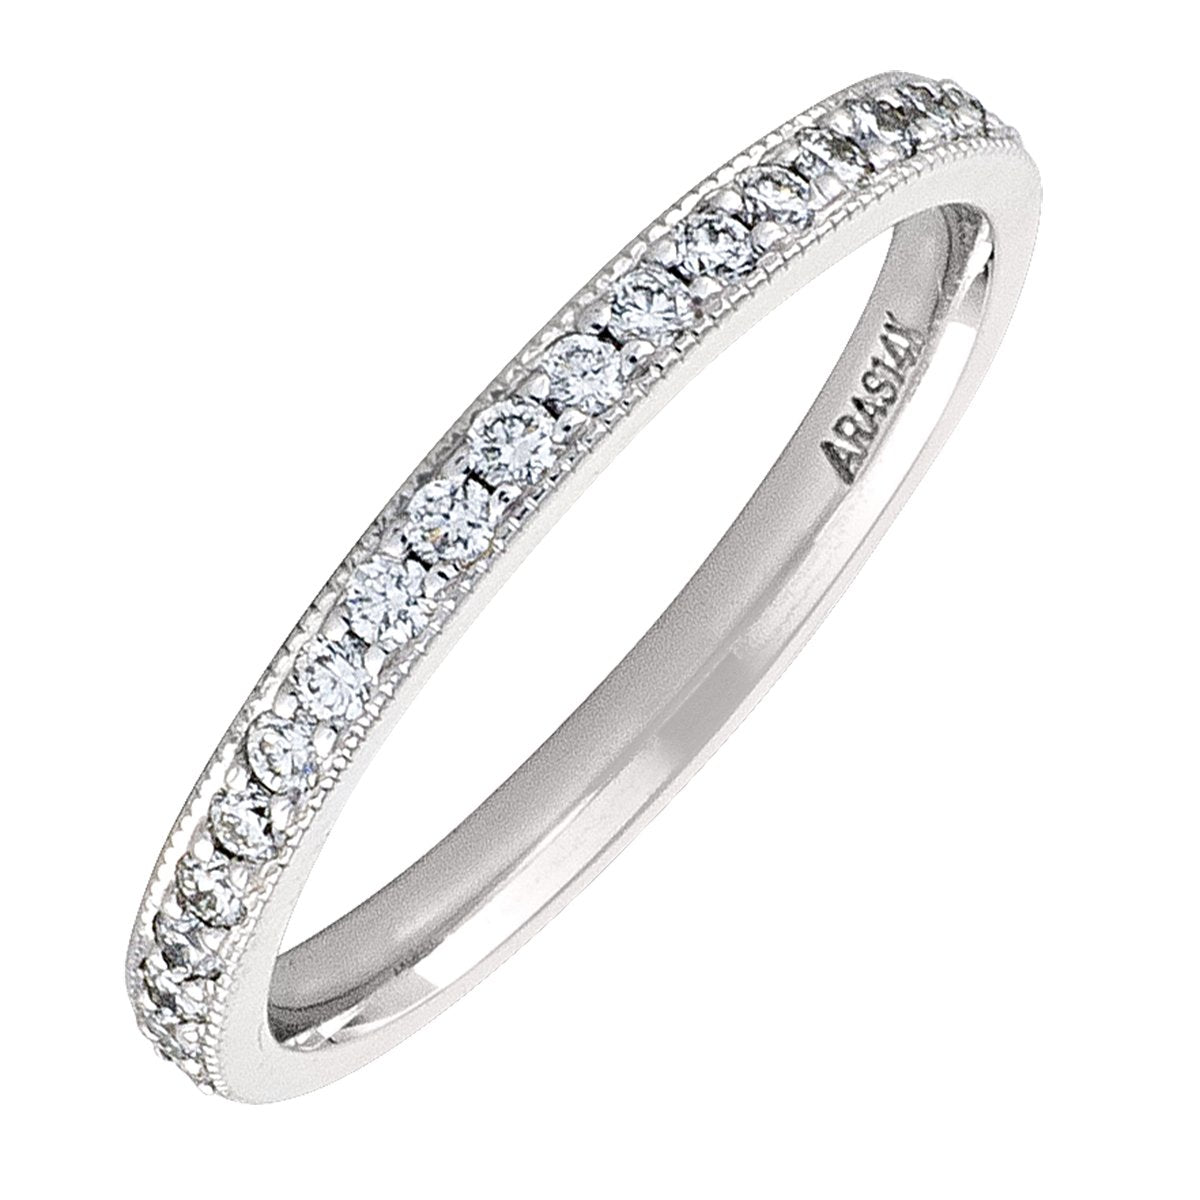 WHITE GOLD DIAMOND PAVE FULL ETERNITY BAND  (AVAILABE IN VARIOUS STONE AND RING SIZE).